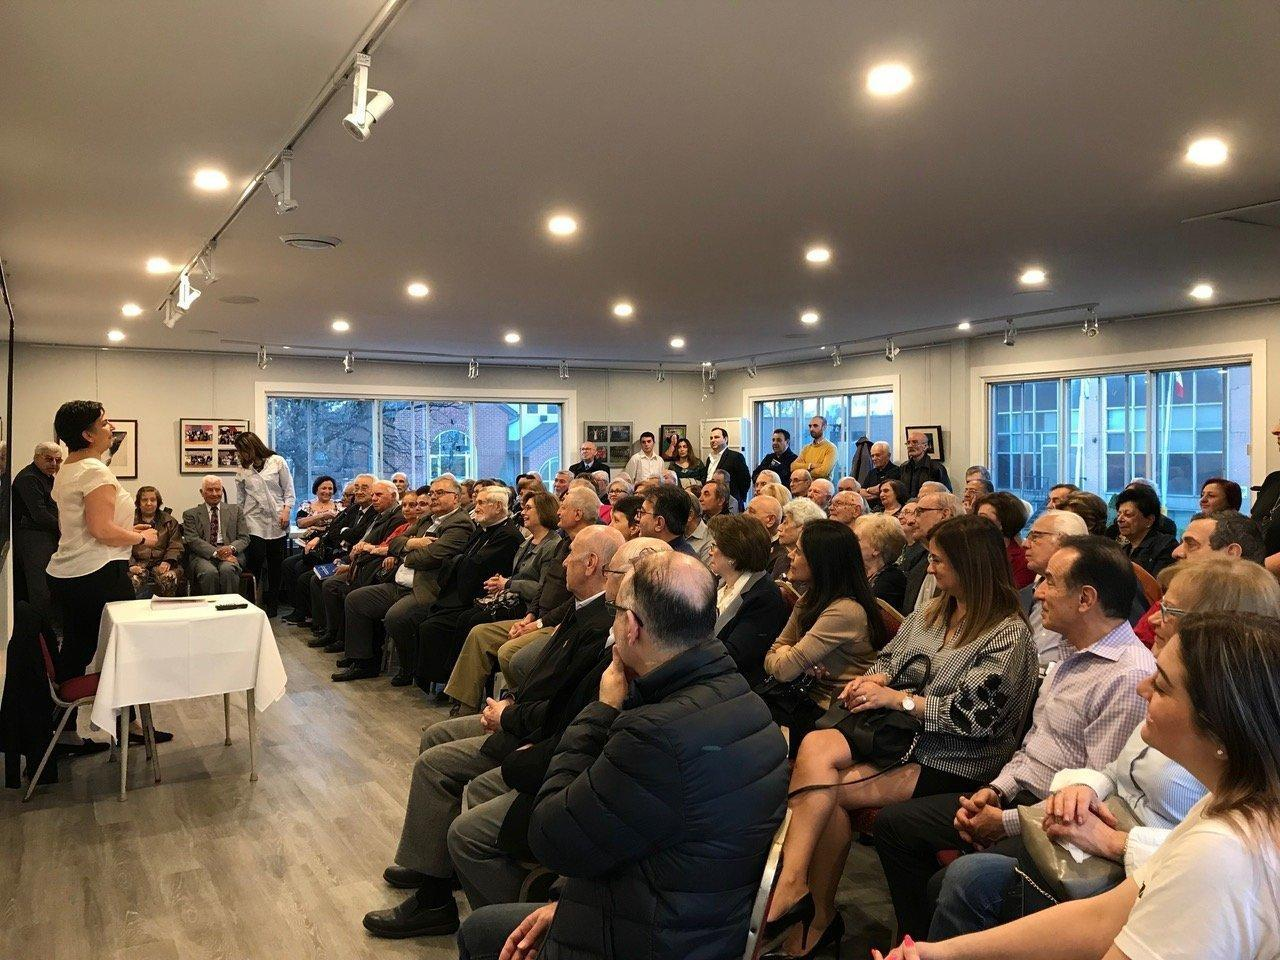 Dr. Ohan Tabakian's Memoirs on Aleppo and Medicine Launched in Canada